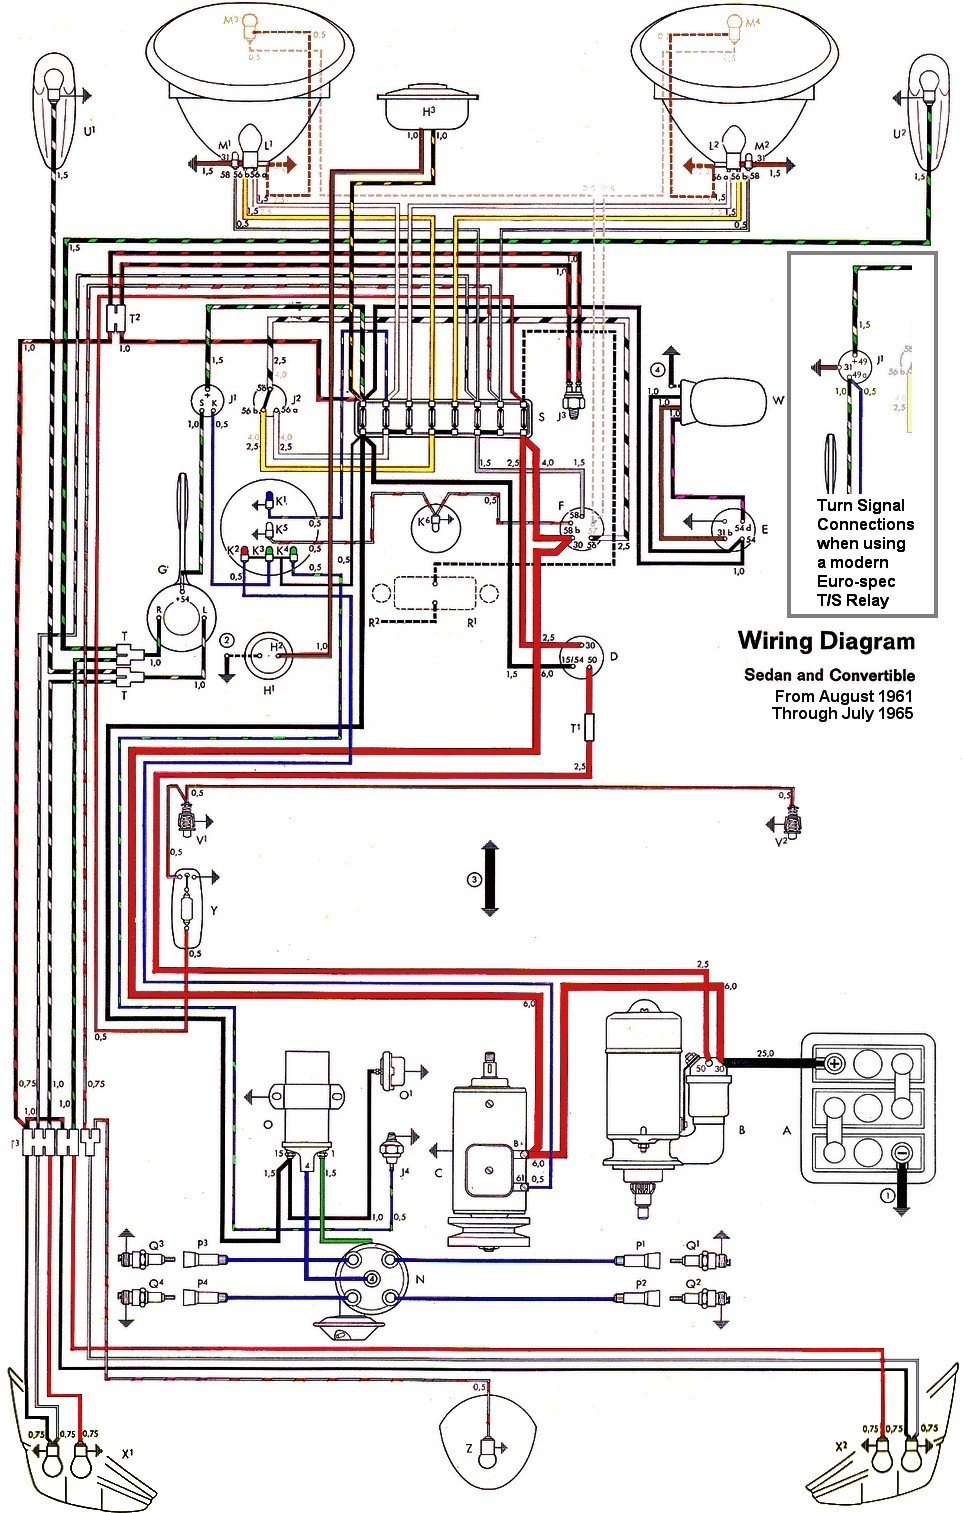 thesamba com type 1 wiring diagrams rh thesamba com  1967 vw beetle engine wiring diagram